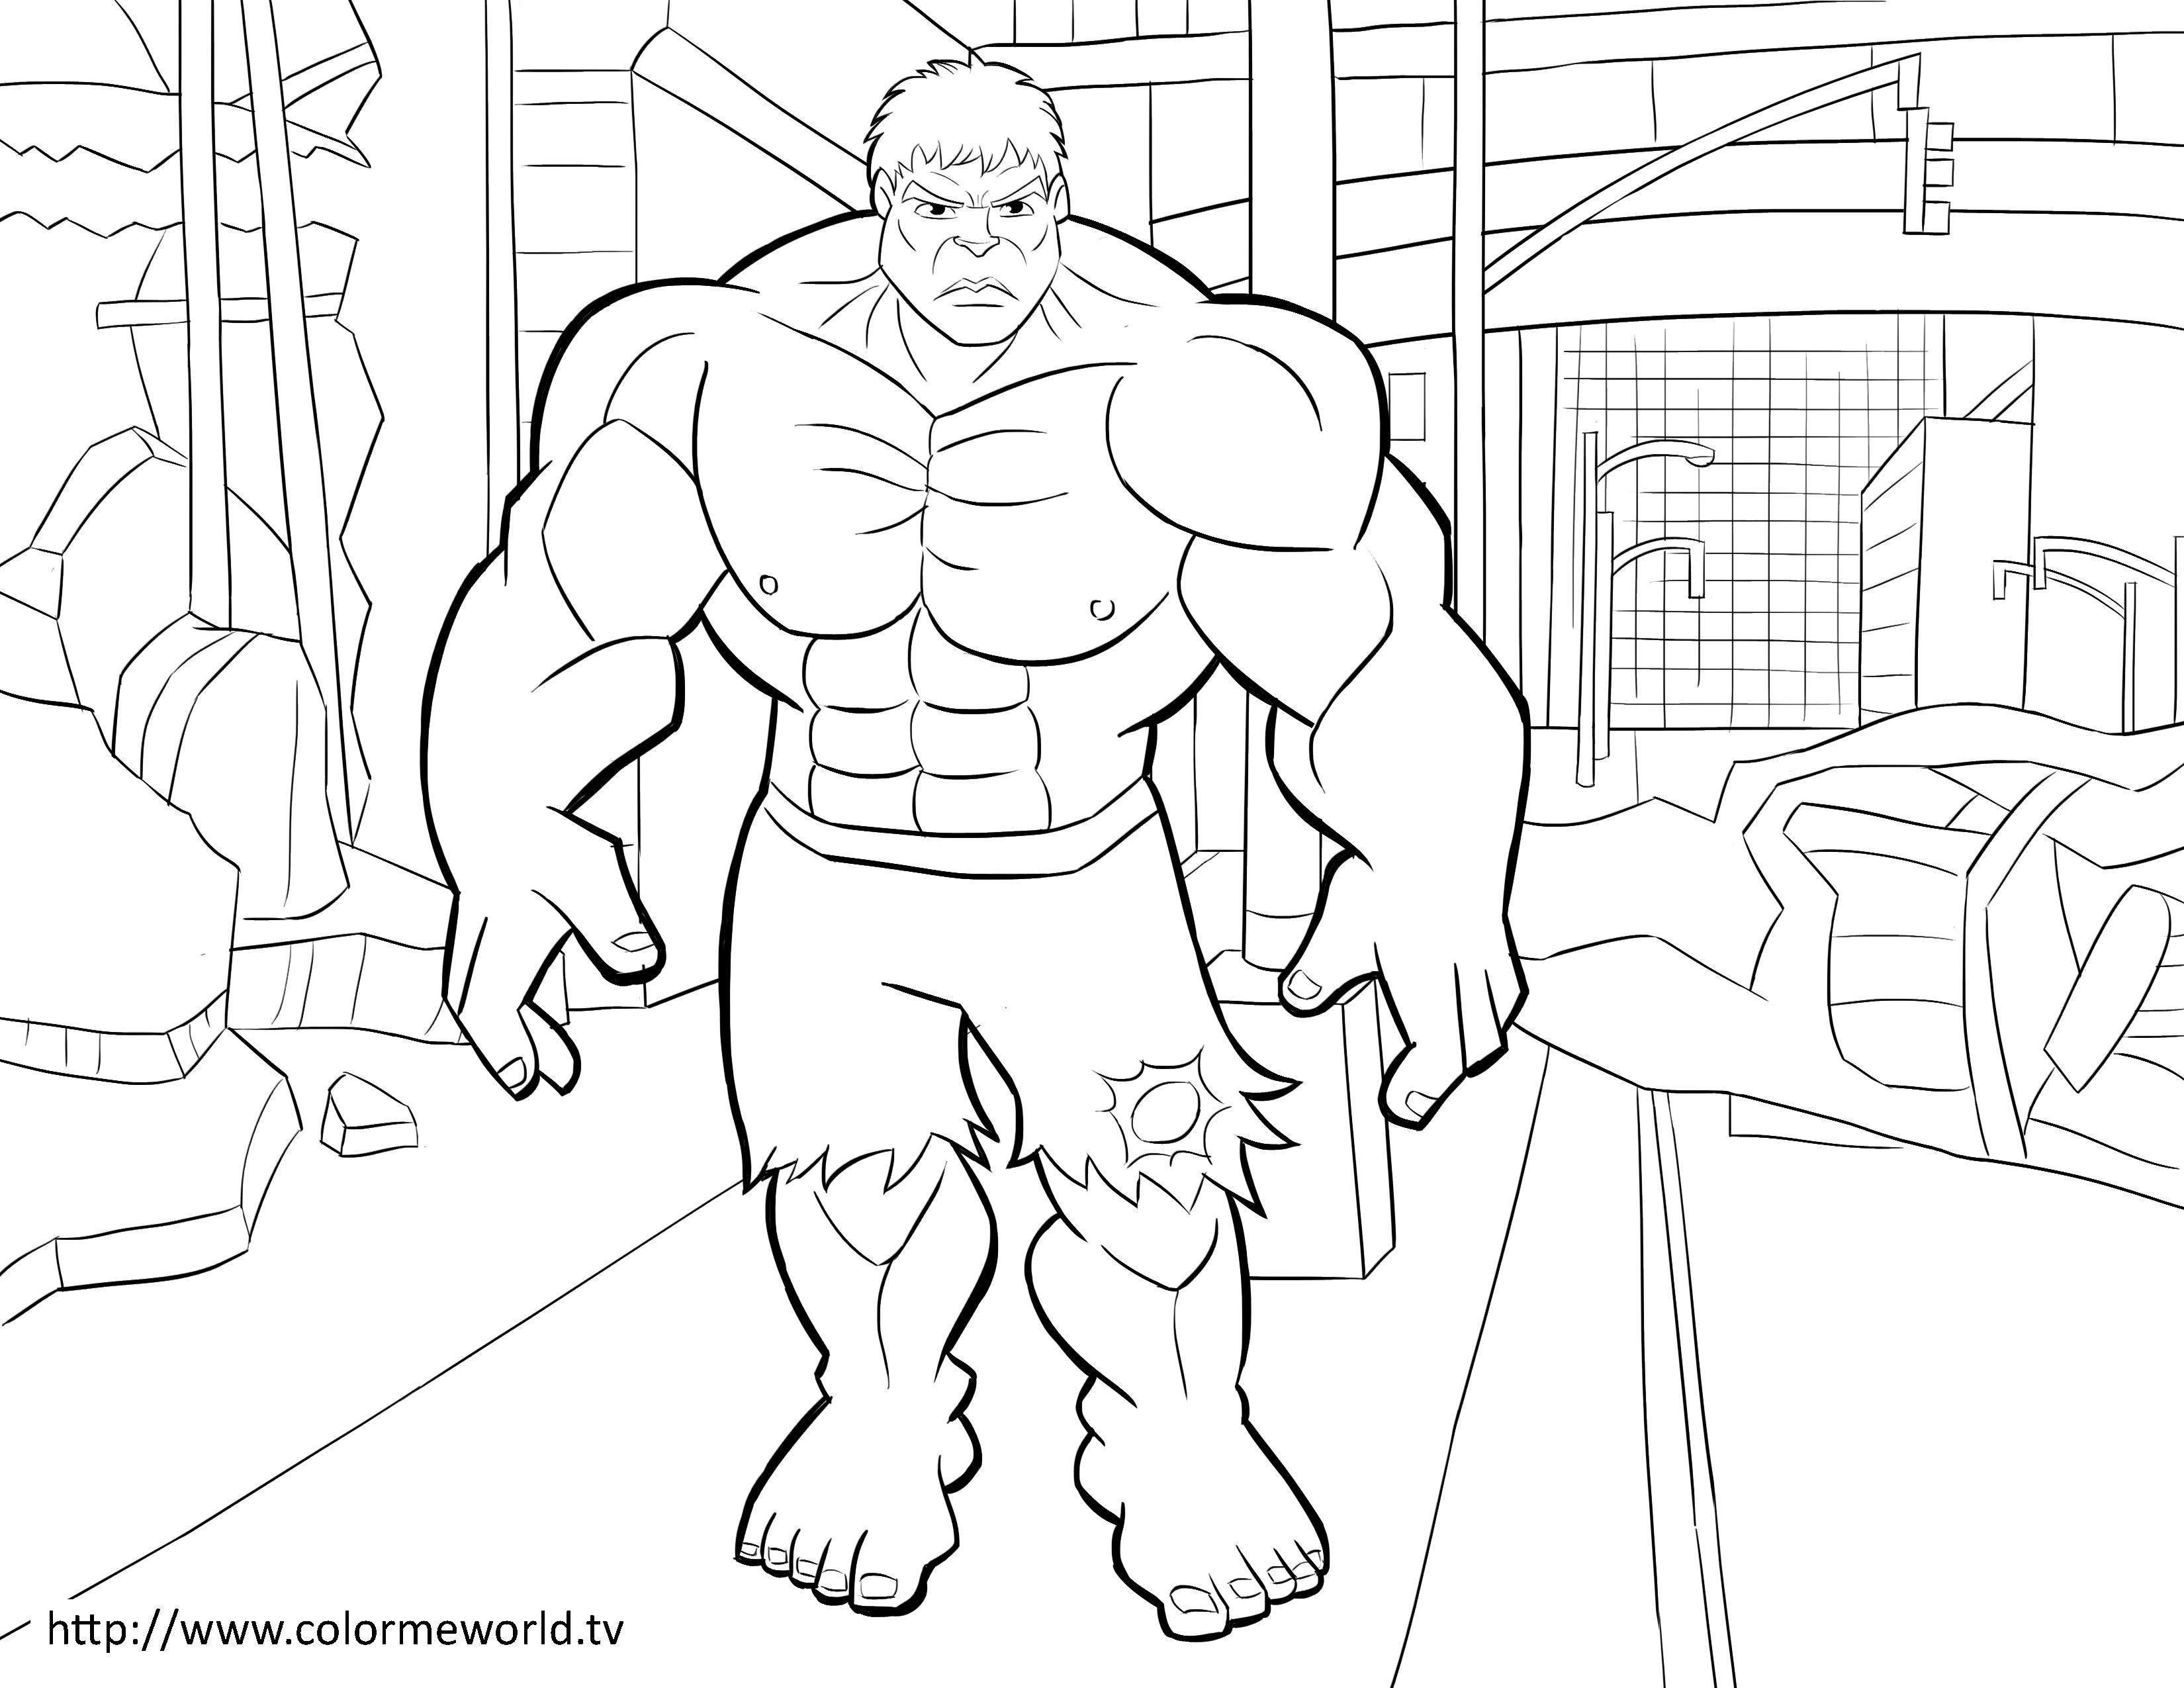 Marvel Coloring Pages Free Printable Marvel Coloring